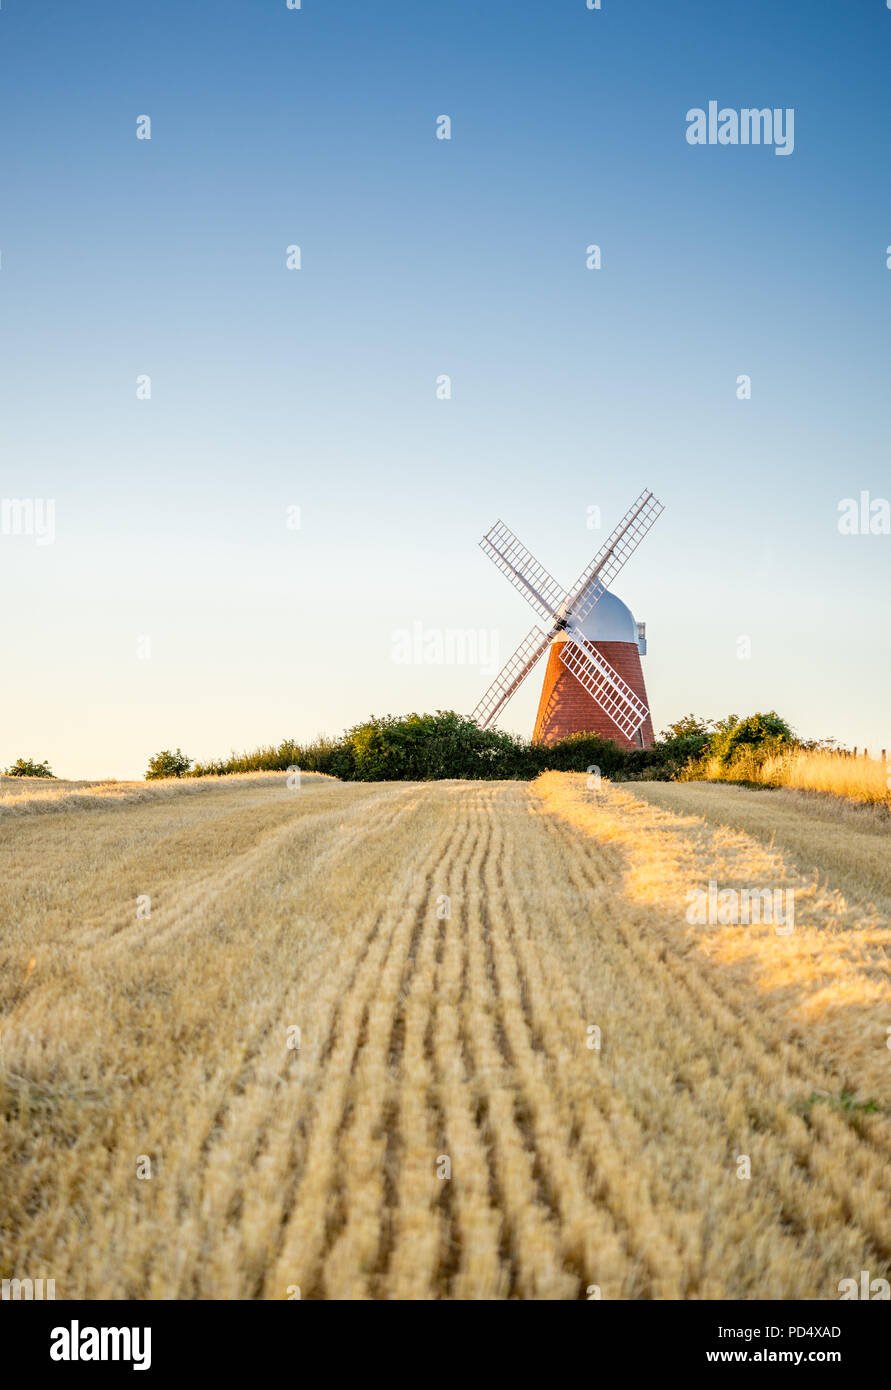 Halnaker Windmill during warm evening light on top of Halnaker Hill in West Sussex, England, UK Stock Photo